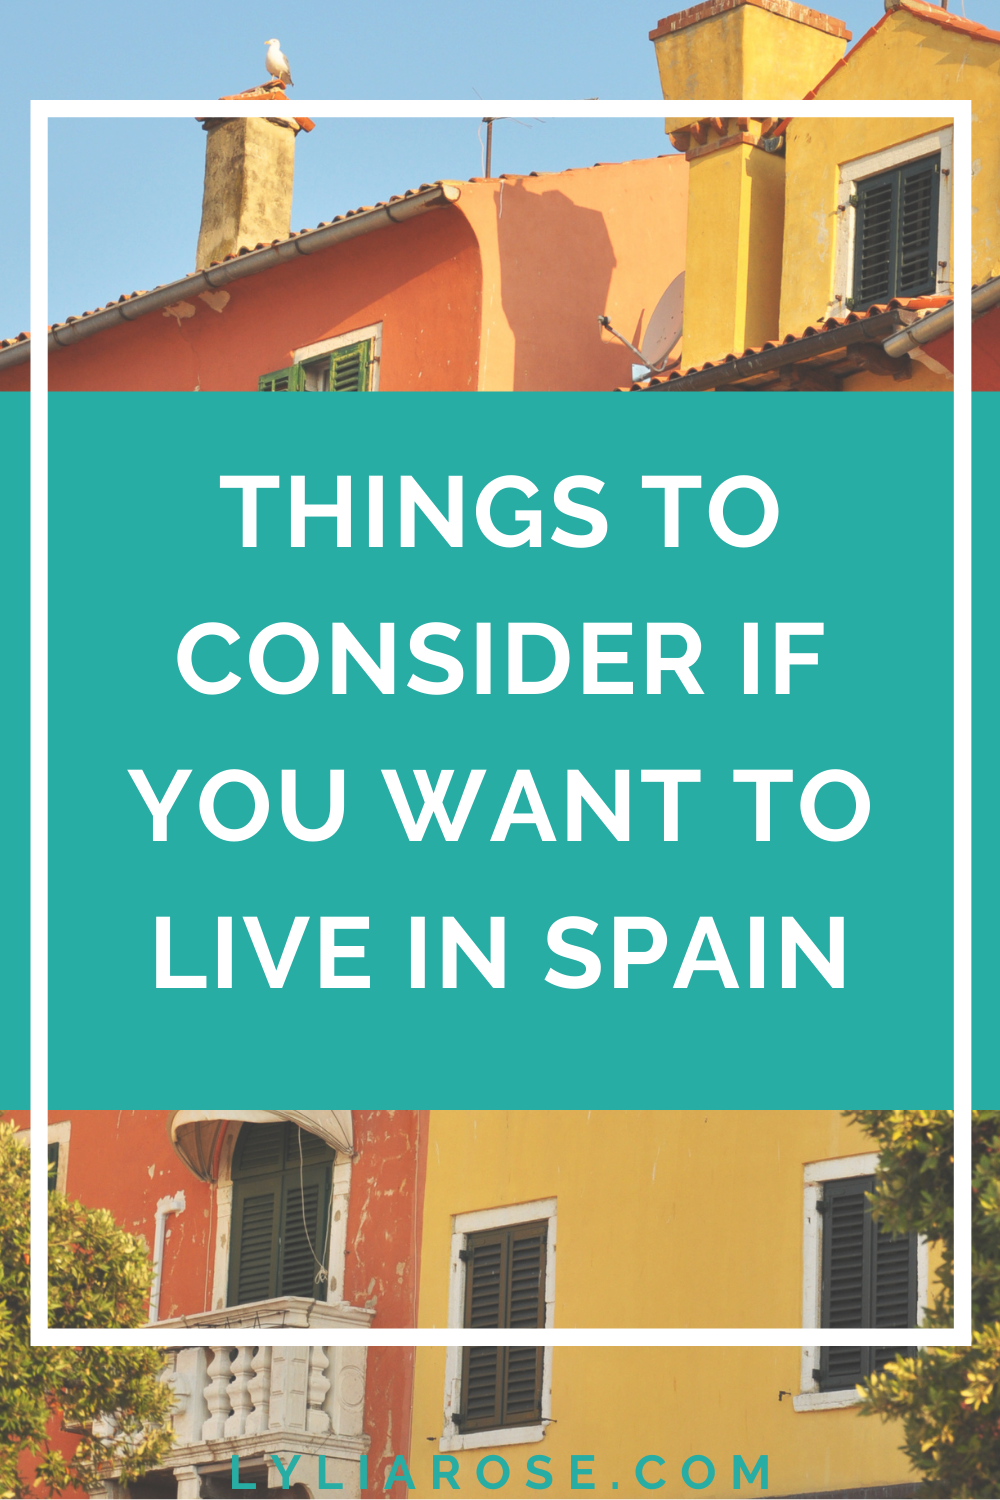 Things to consider if you want to live in Spain